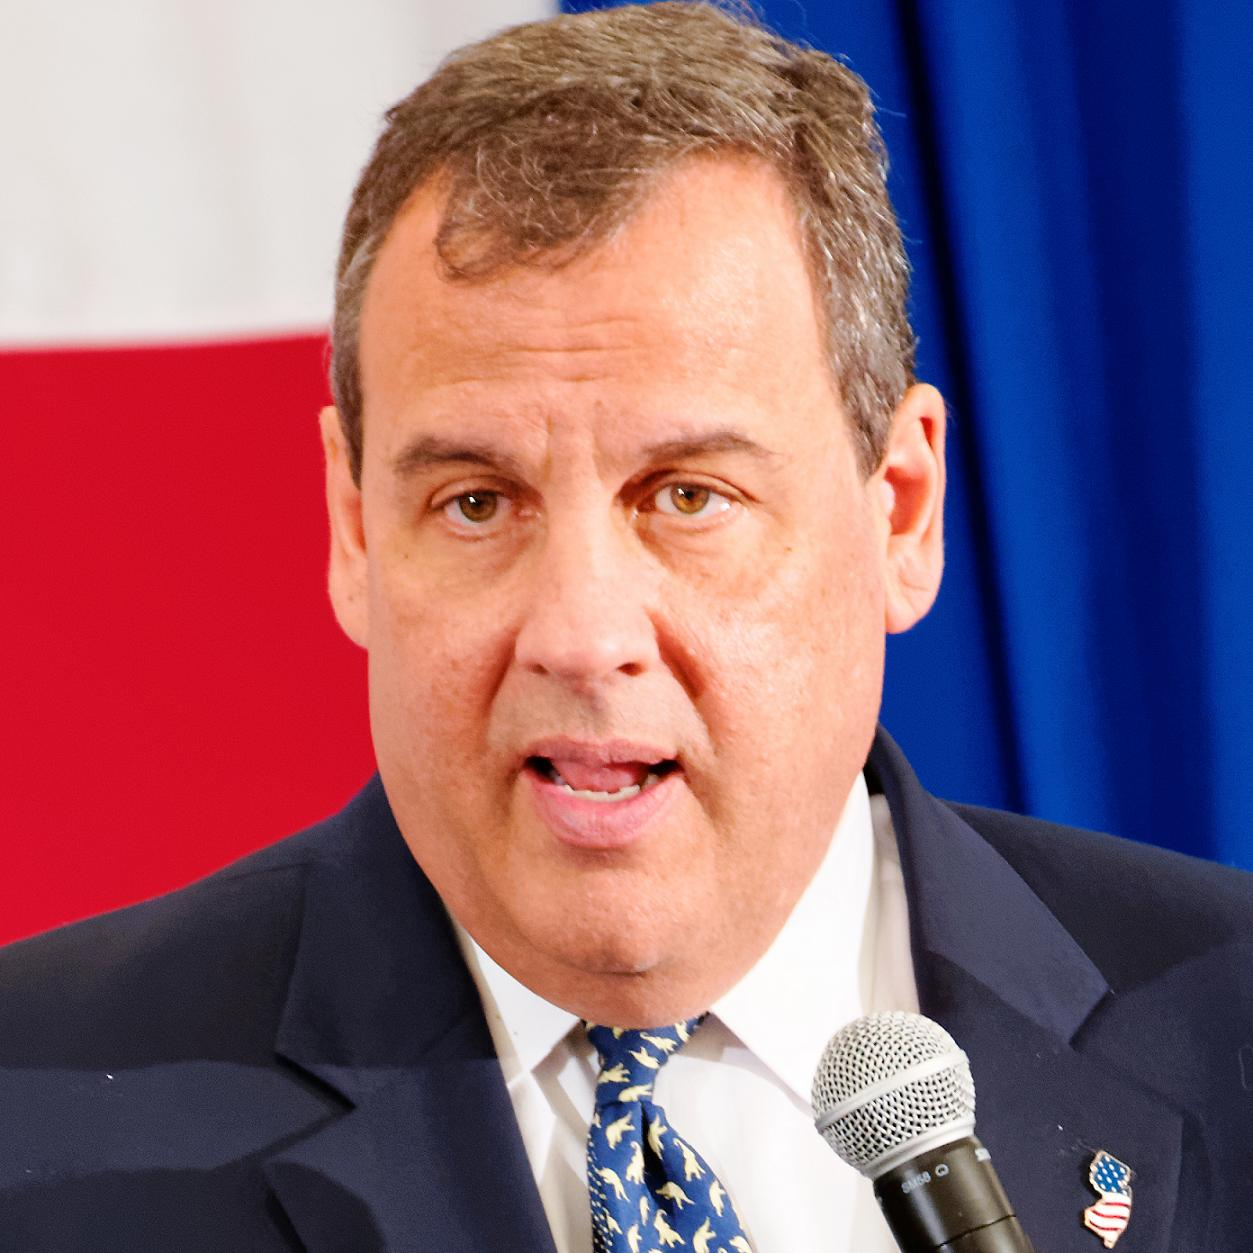 Chris Christie Bio, Net Worth, Facts